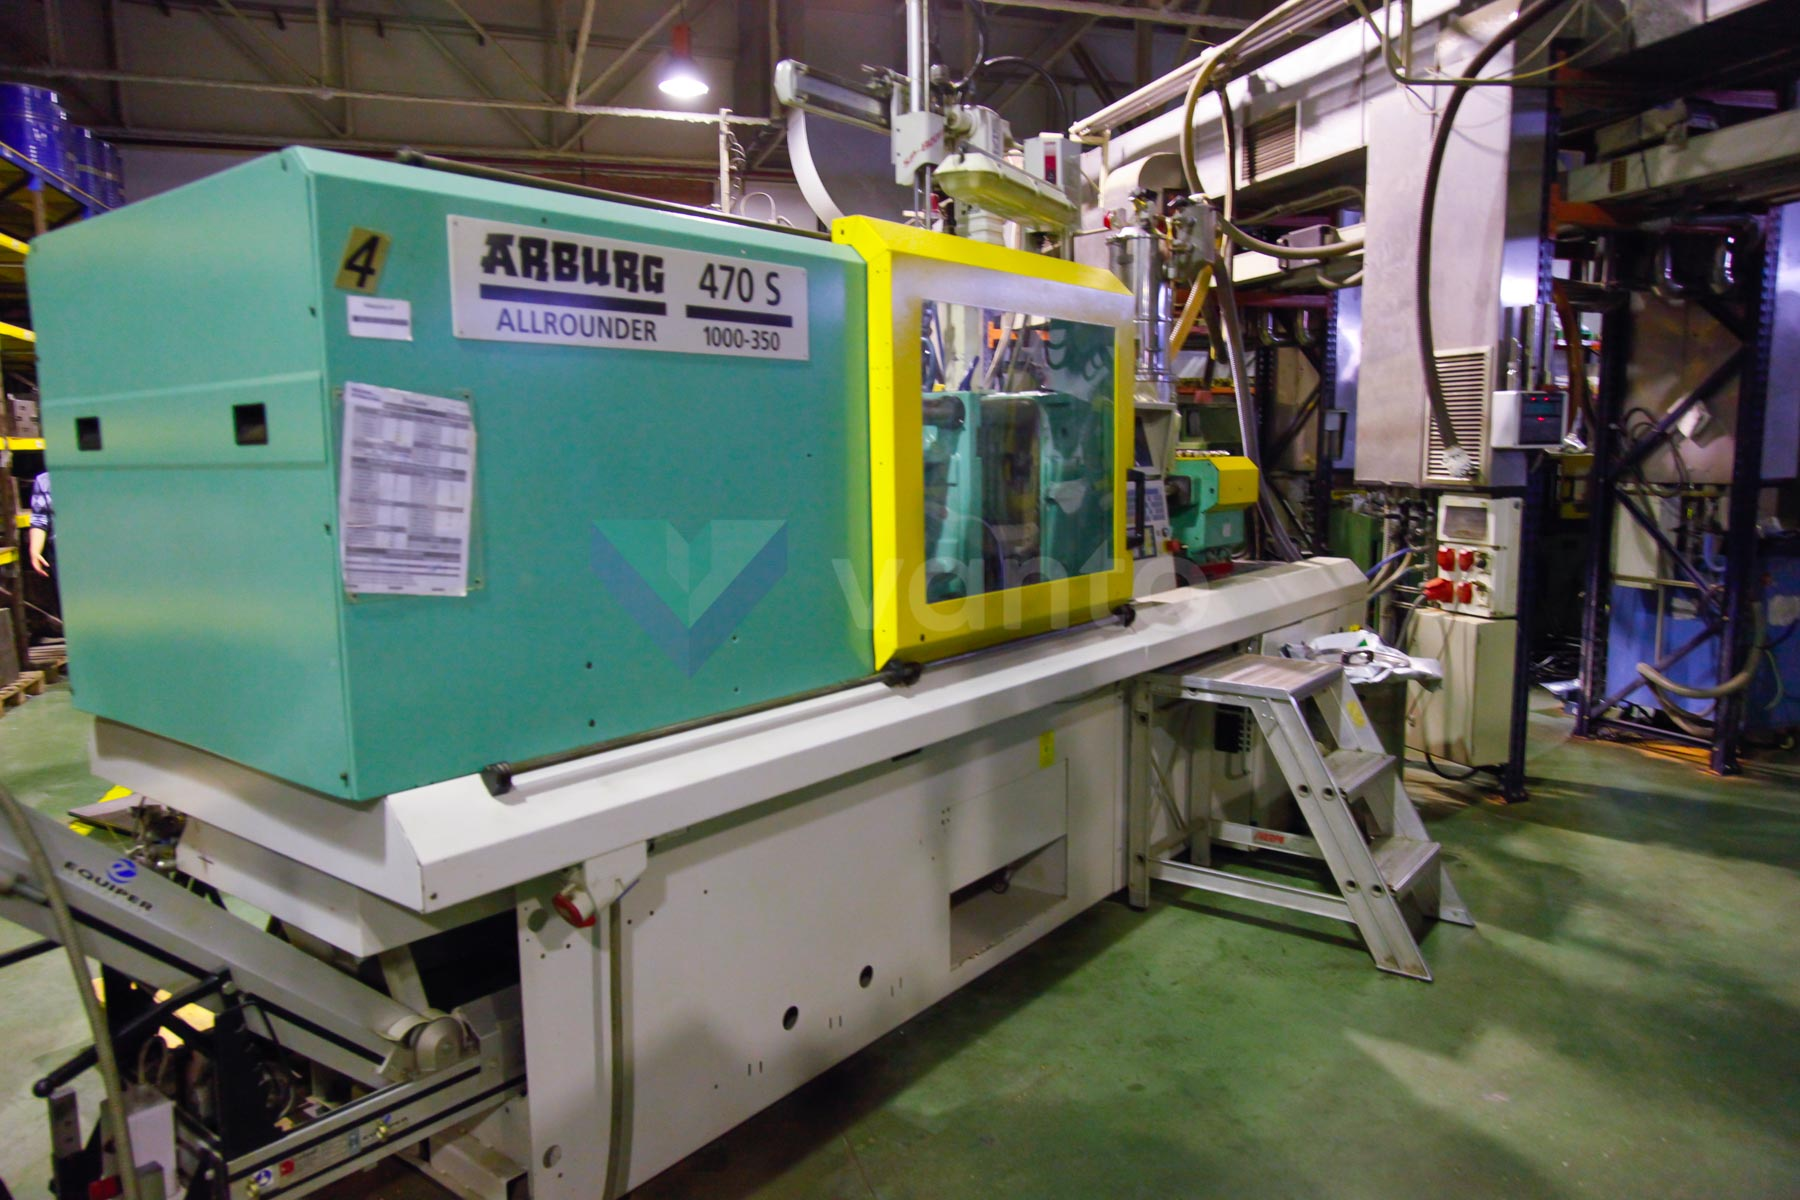 ARBURG 470 S ALLROUNDER 1000 - 350 100t injection molding machine (2000) id4543